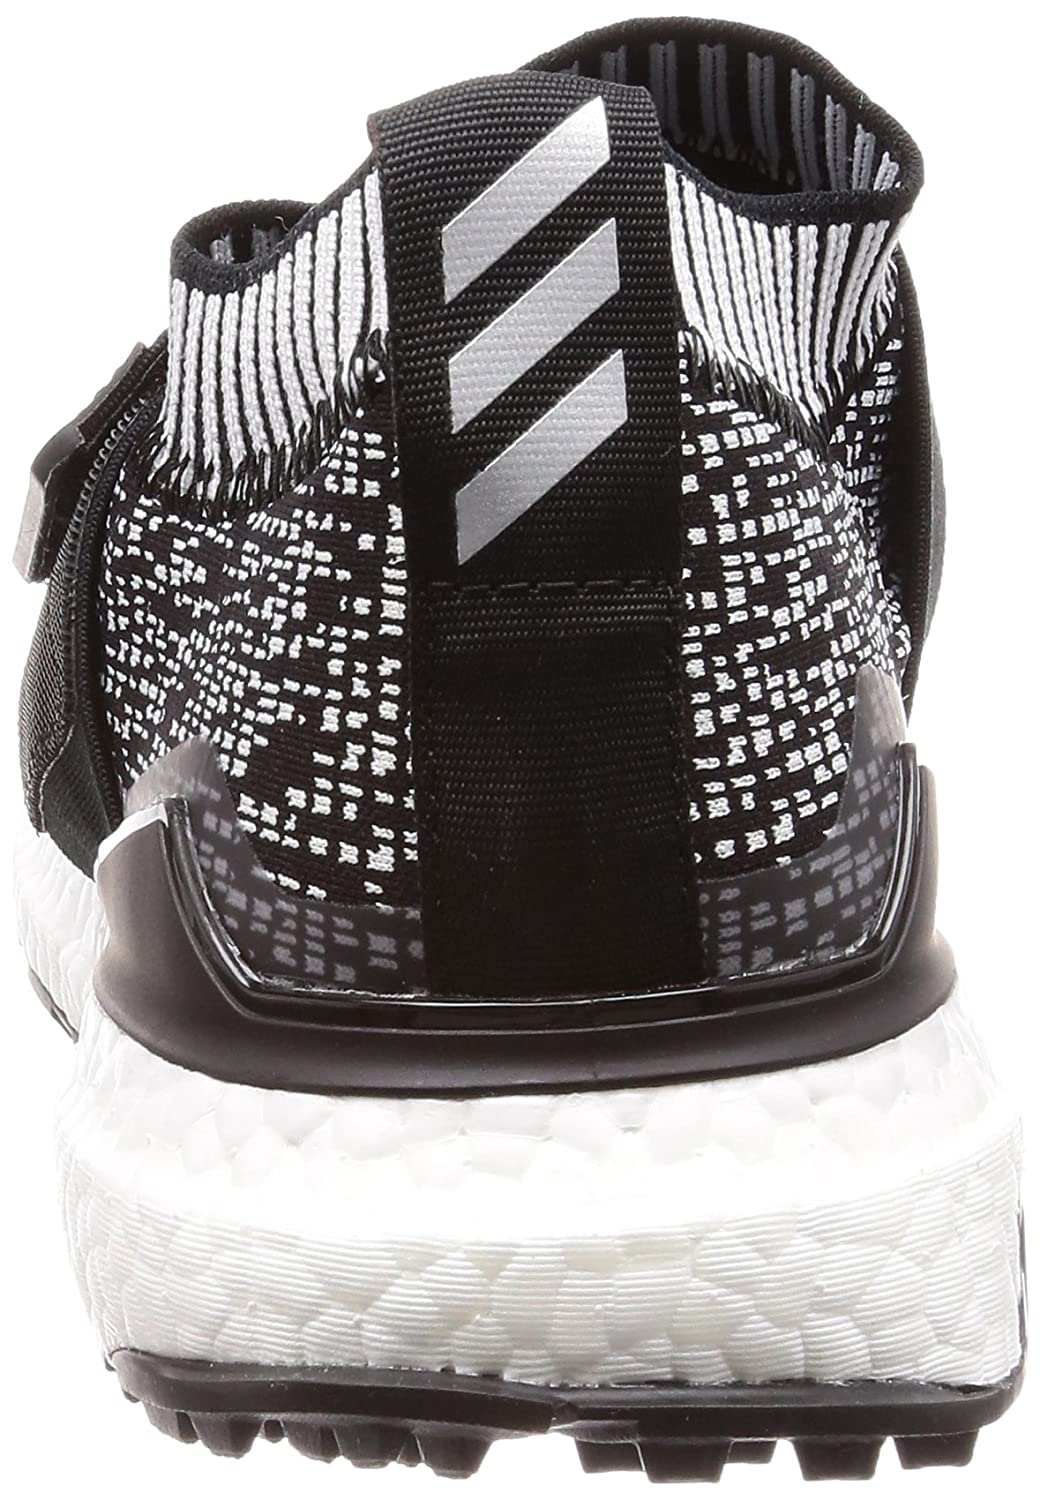 Mr/Ms adidas Golf Golf Golf Mens 2018 Crossknit 2.0 Golf Shoes Every item described is available Let our products go to the world high quality product HV7646 892c60